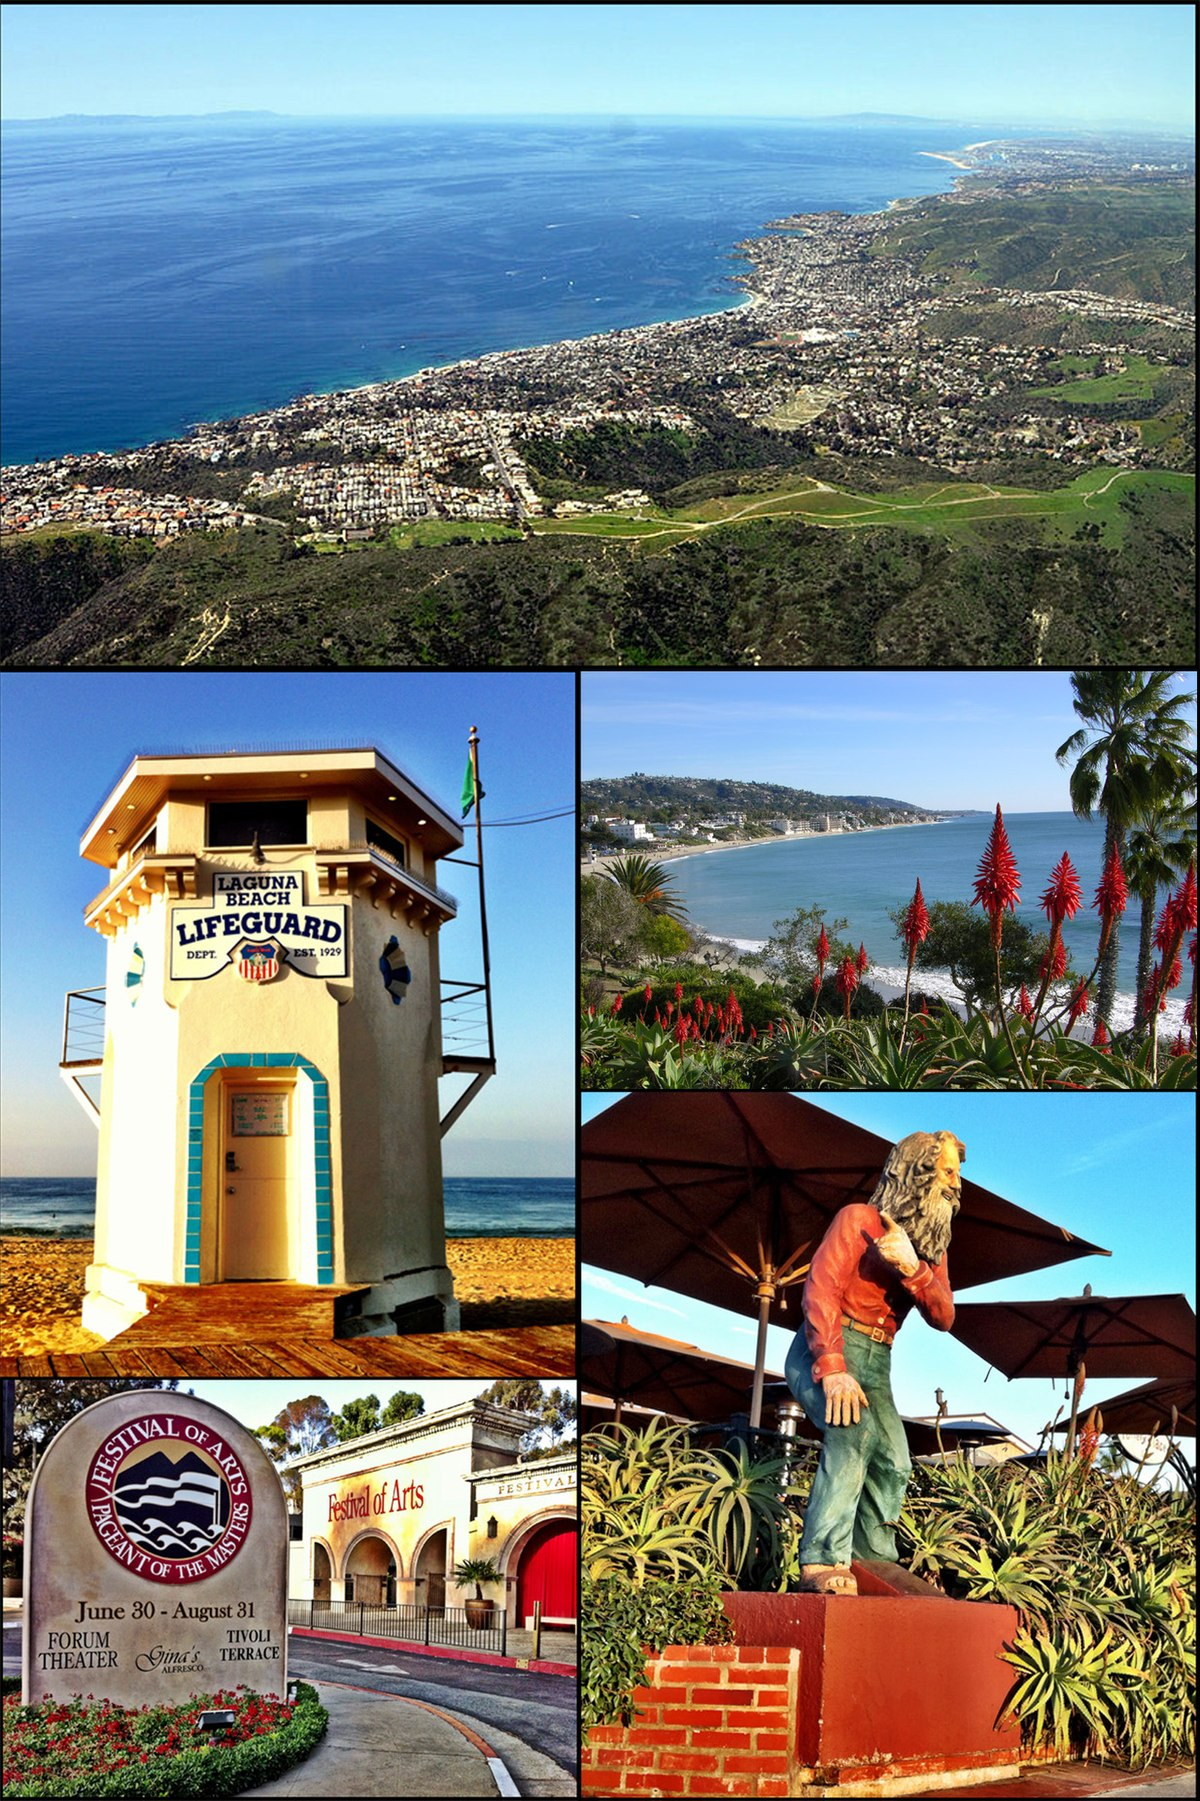 Laguna Beach, California - Wikipedia